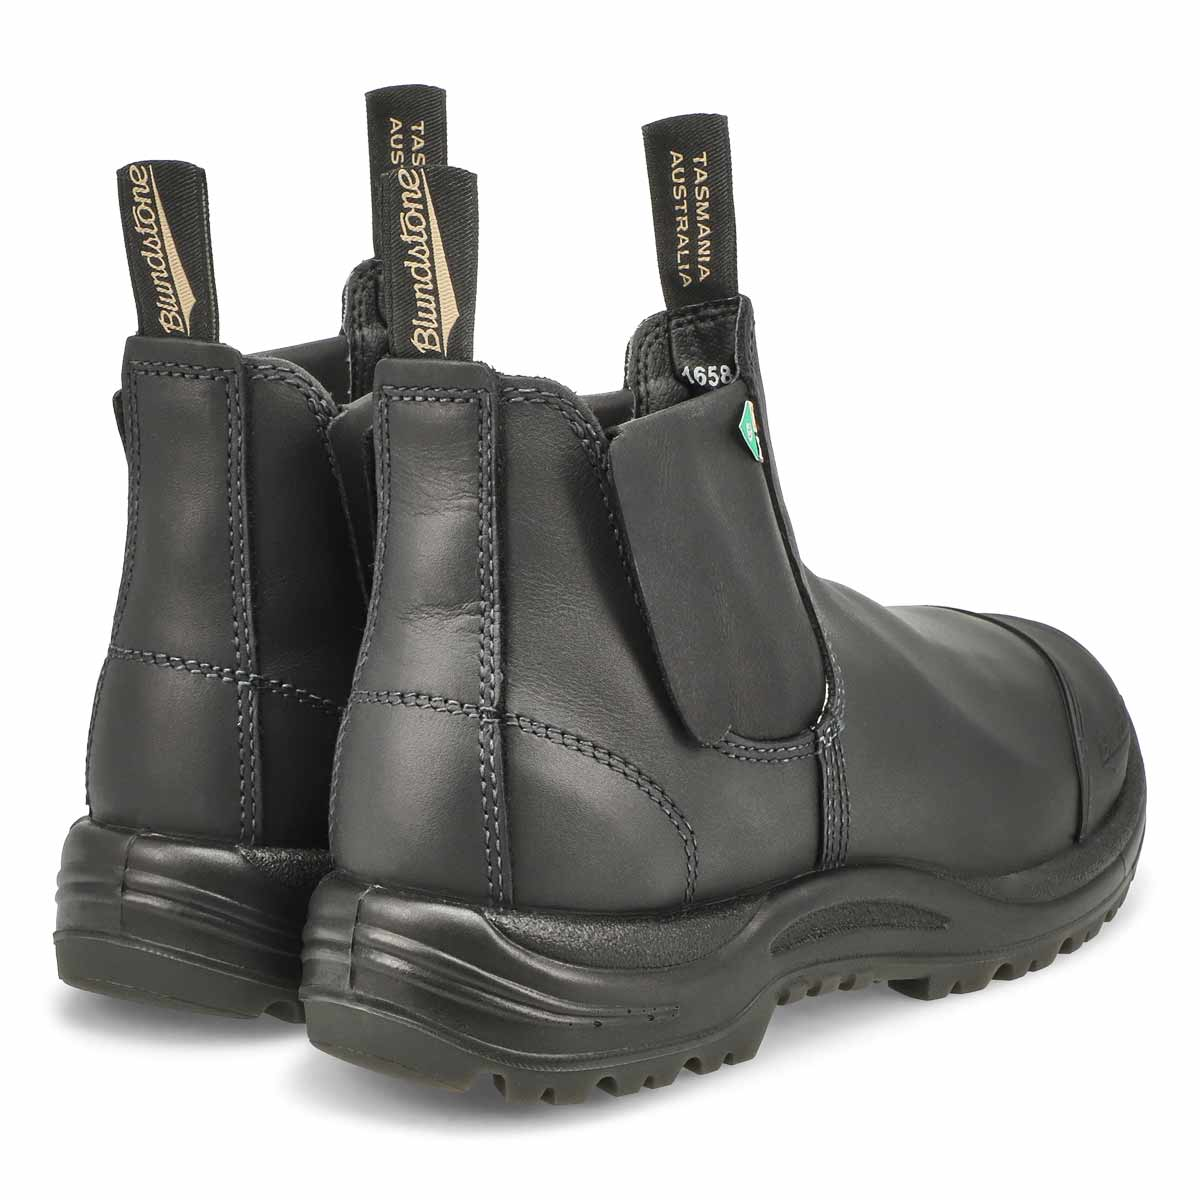 Mns Met Guard CSA blk twin gore boot